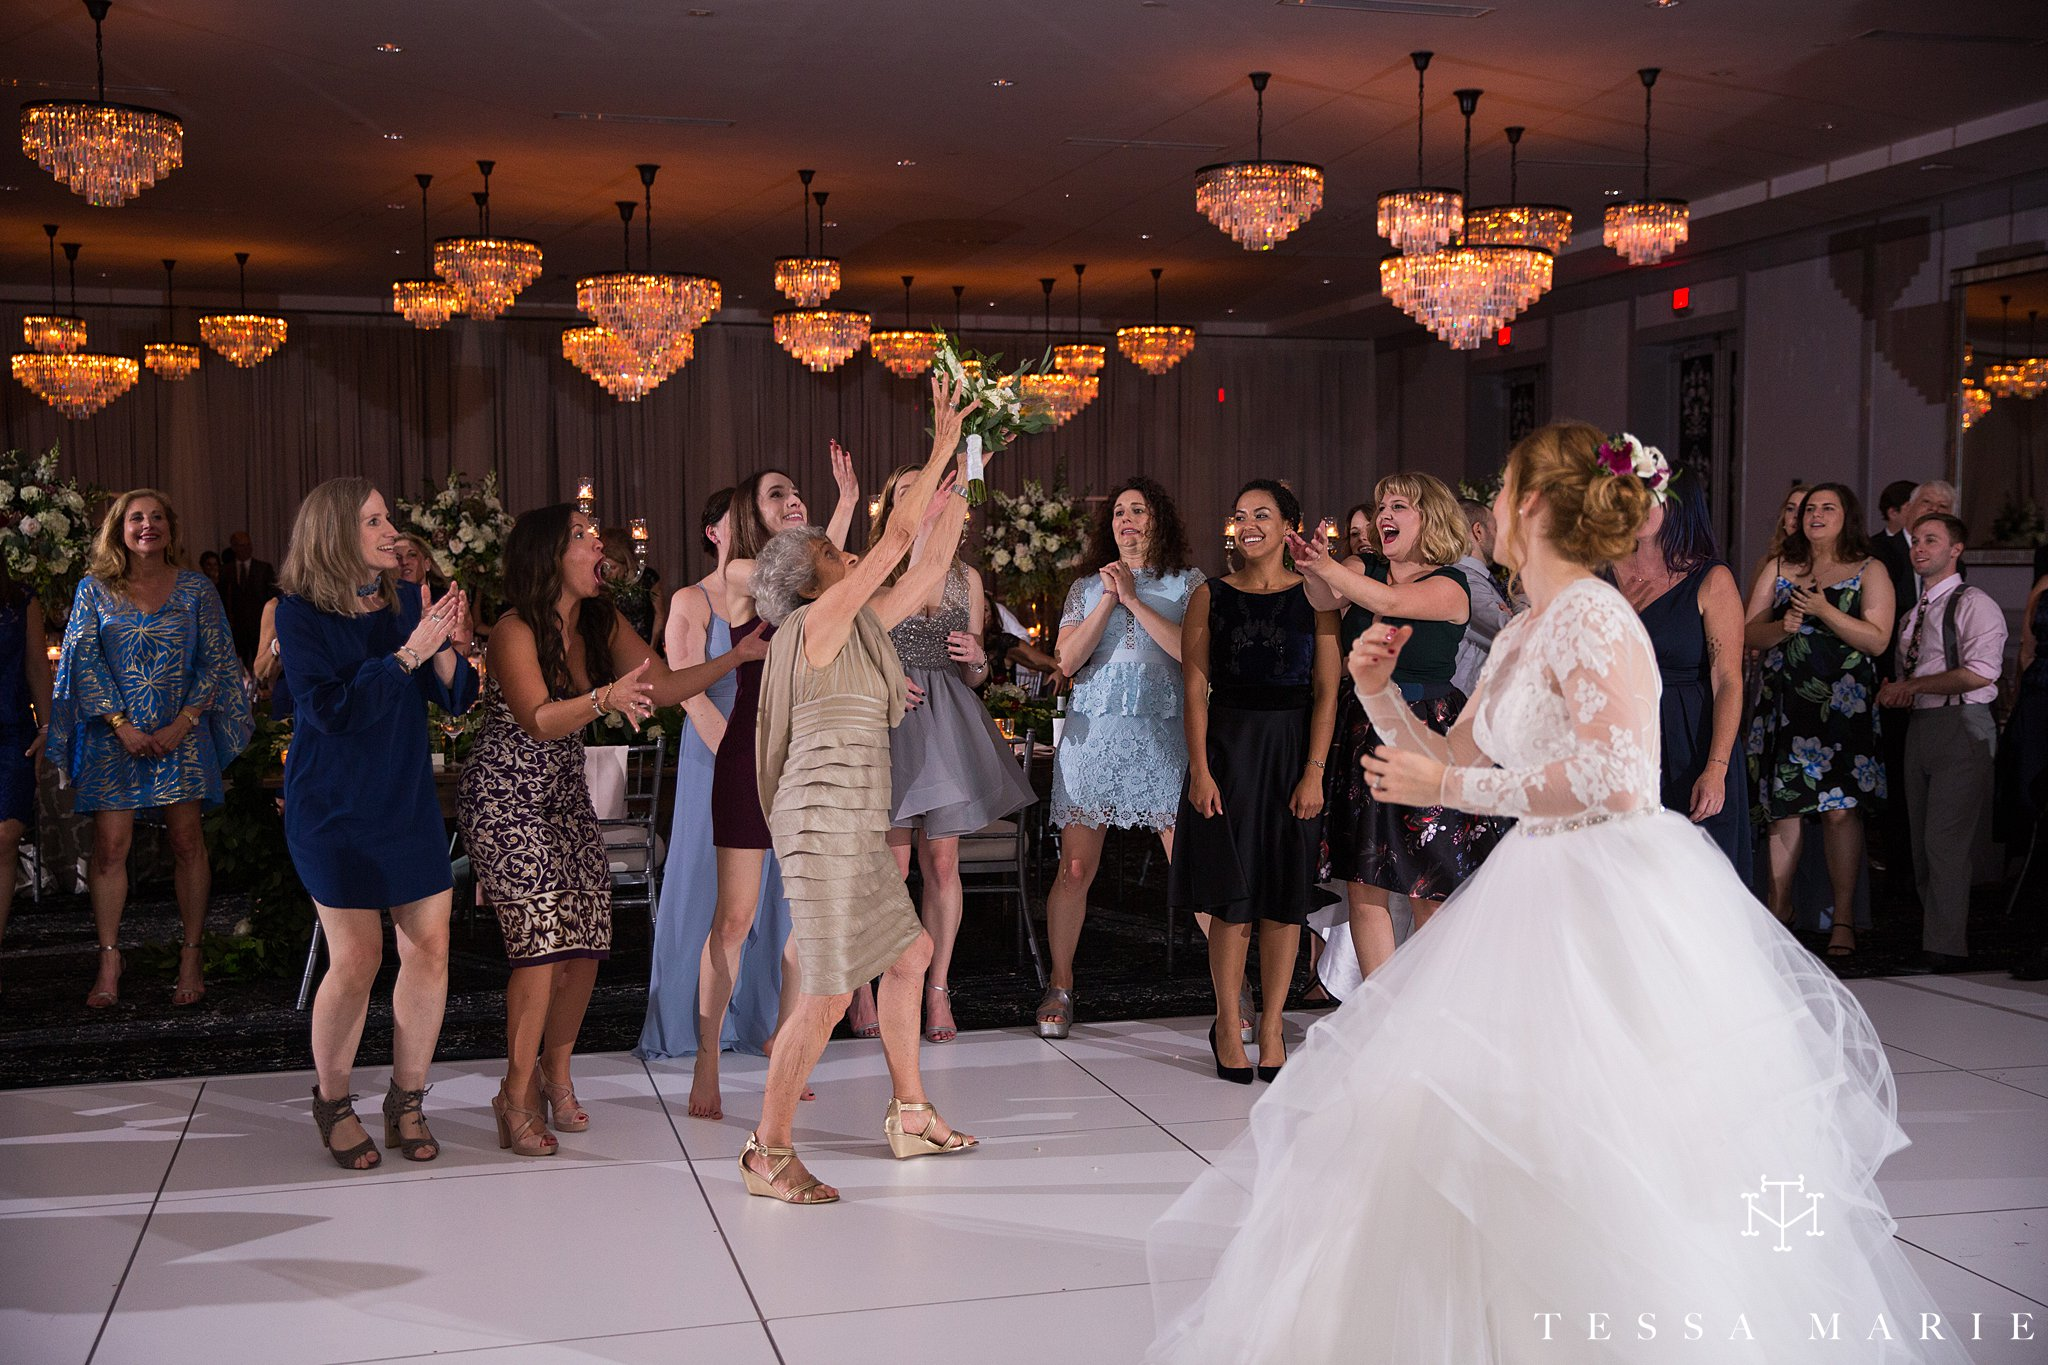 tessa_marie_weddings_estate_wedding_flourish_wedding_legendary_events_wedding_angels_bride_groom_wedding_Day_rainy_wedding_day_fall_october_wedding_atlantas_best_wedding_professionals_0947.jpg